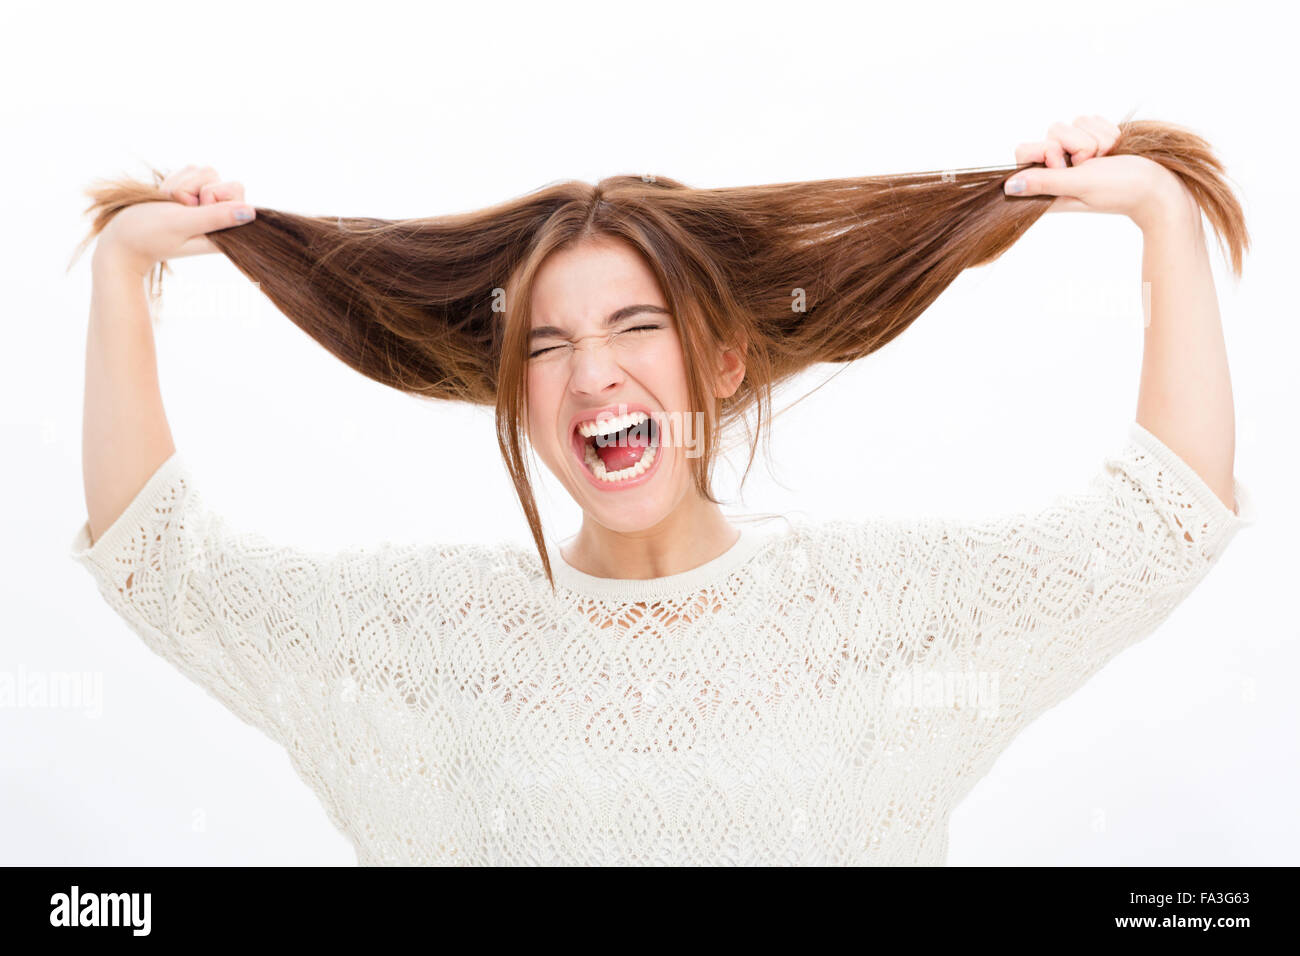 Desperate hysterical shouting young woman in black clothes over white background - Stock Image